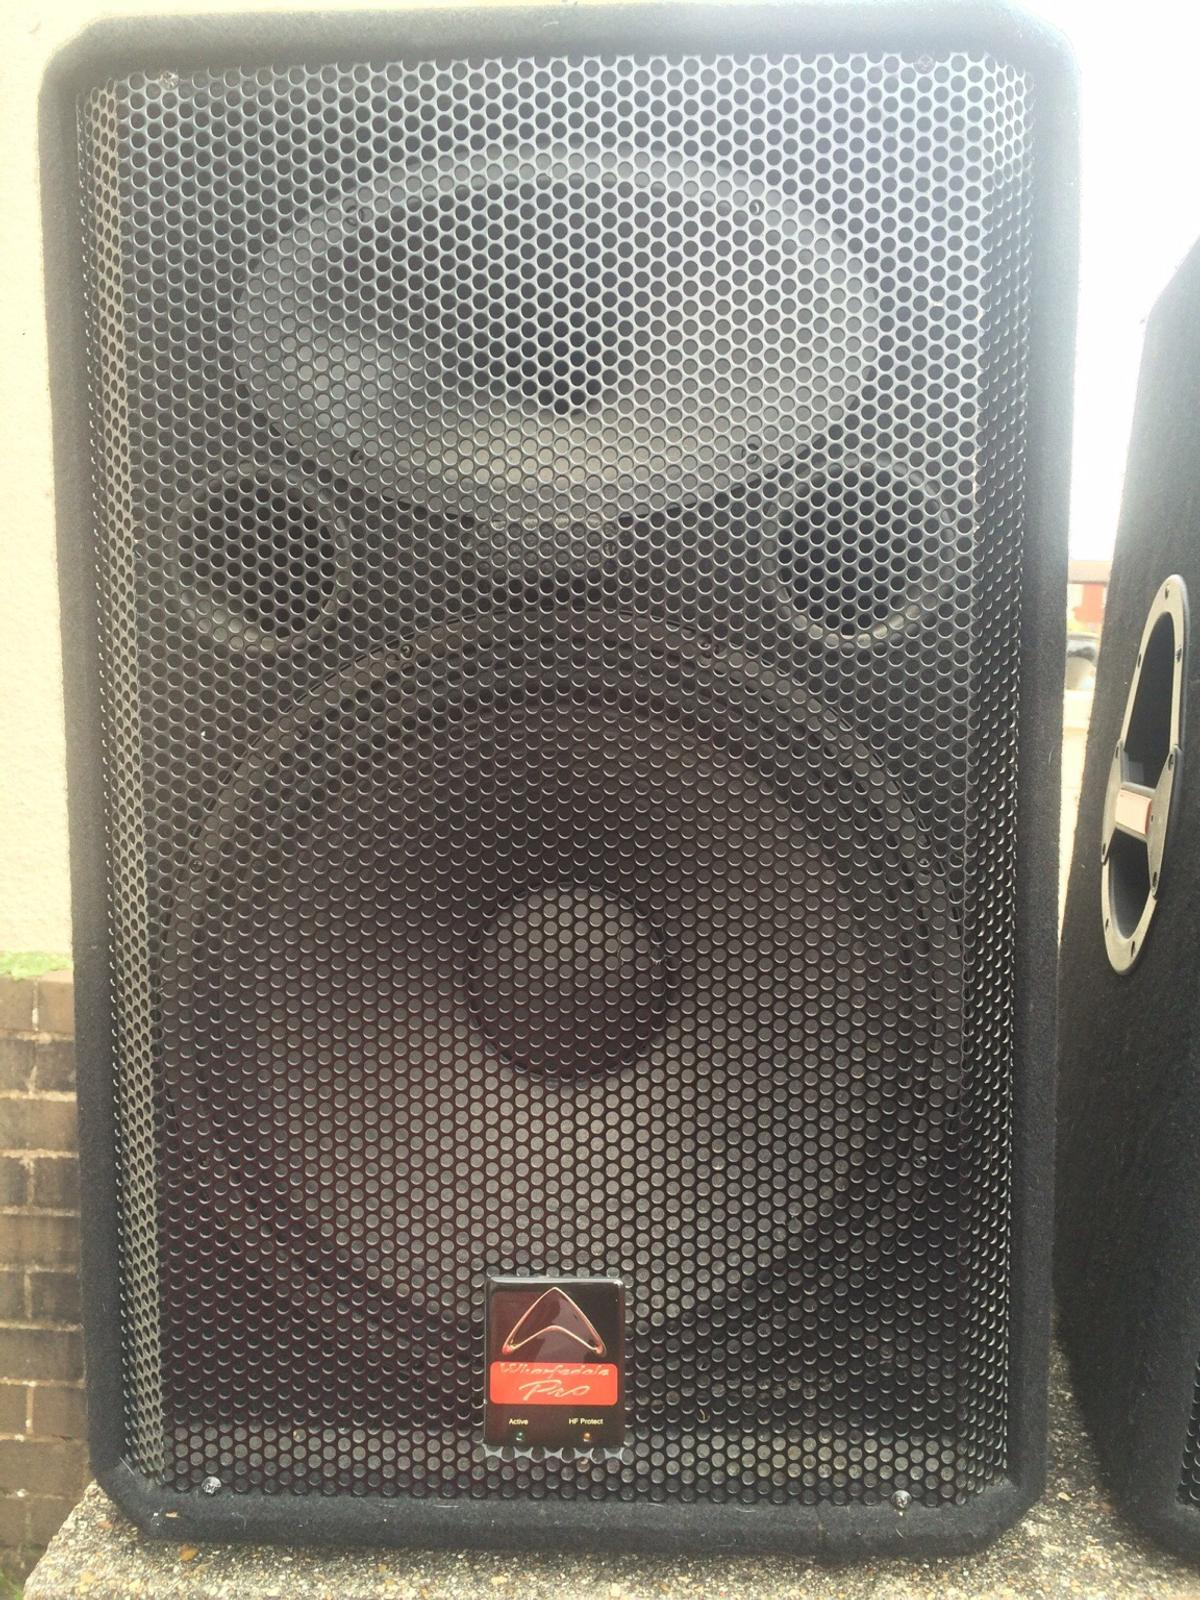 2 Wharfedale Pro EVP-X15 passive speakers in UB10 London for